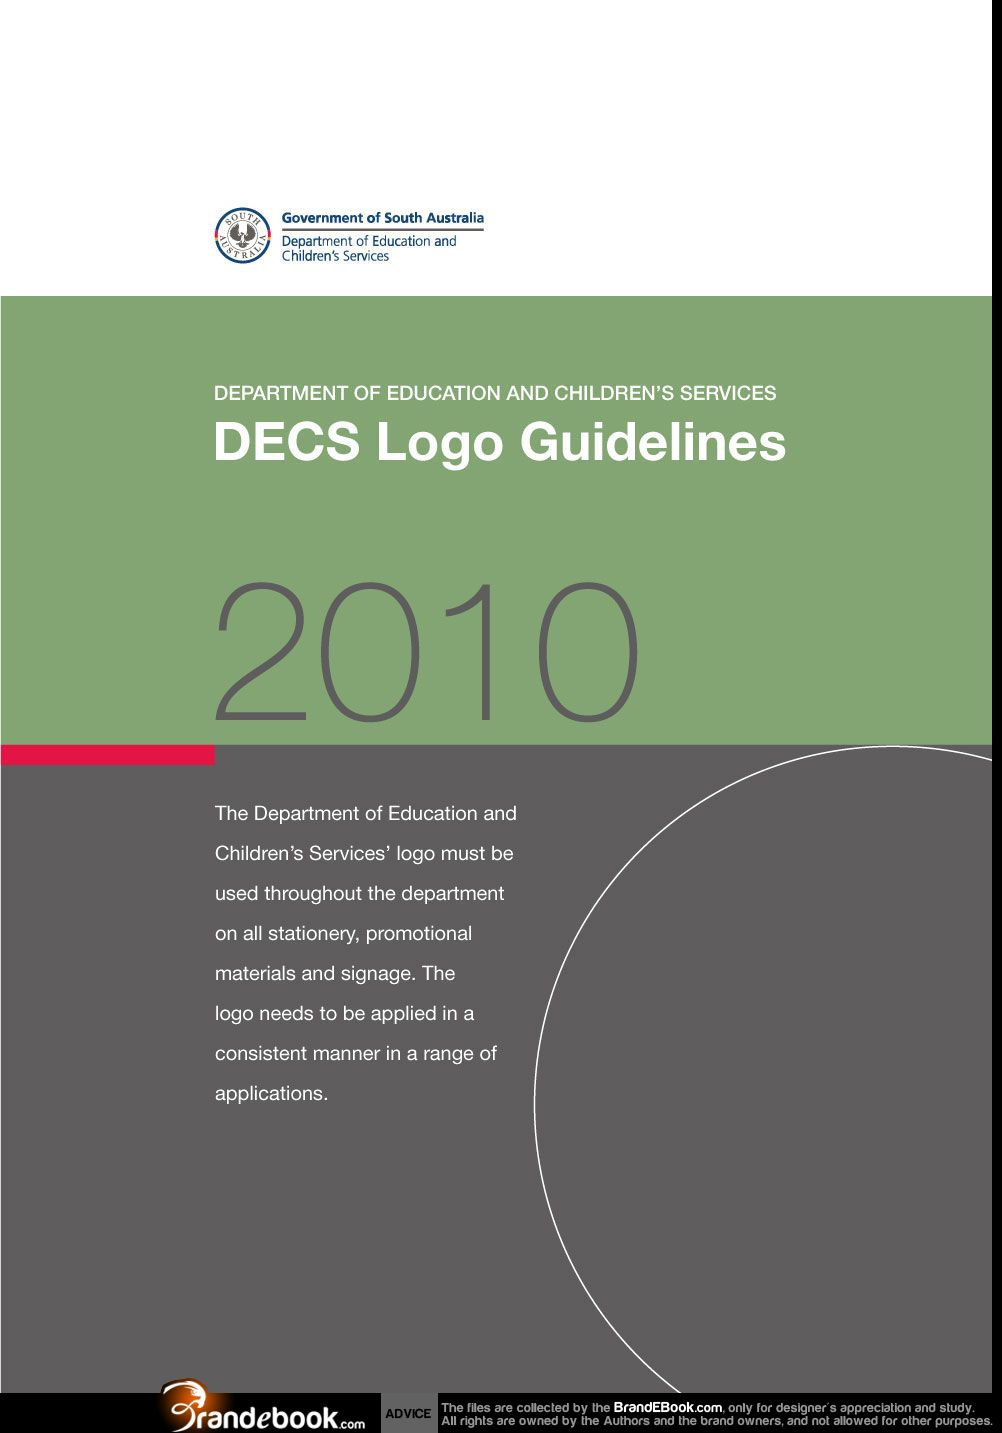 Brand manual corporate identity guidelines pdf download categories decs department of education and childrens services logo guidelines fandeluxe Gallery